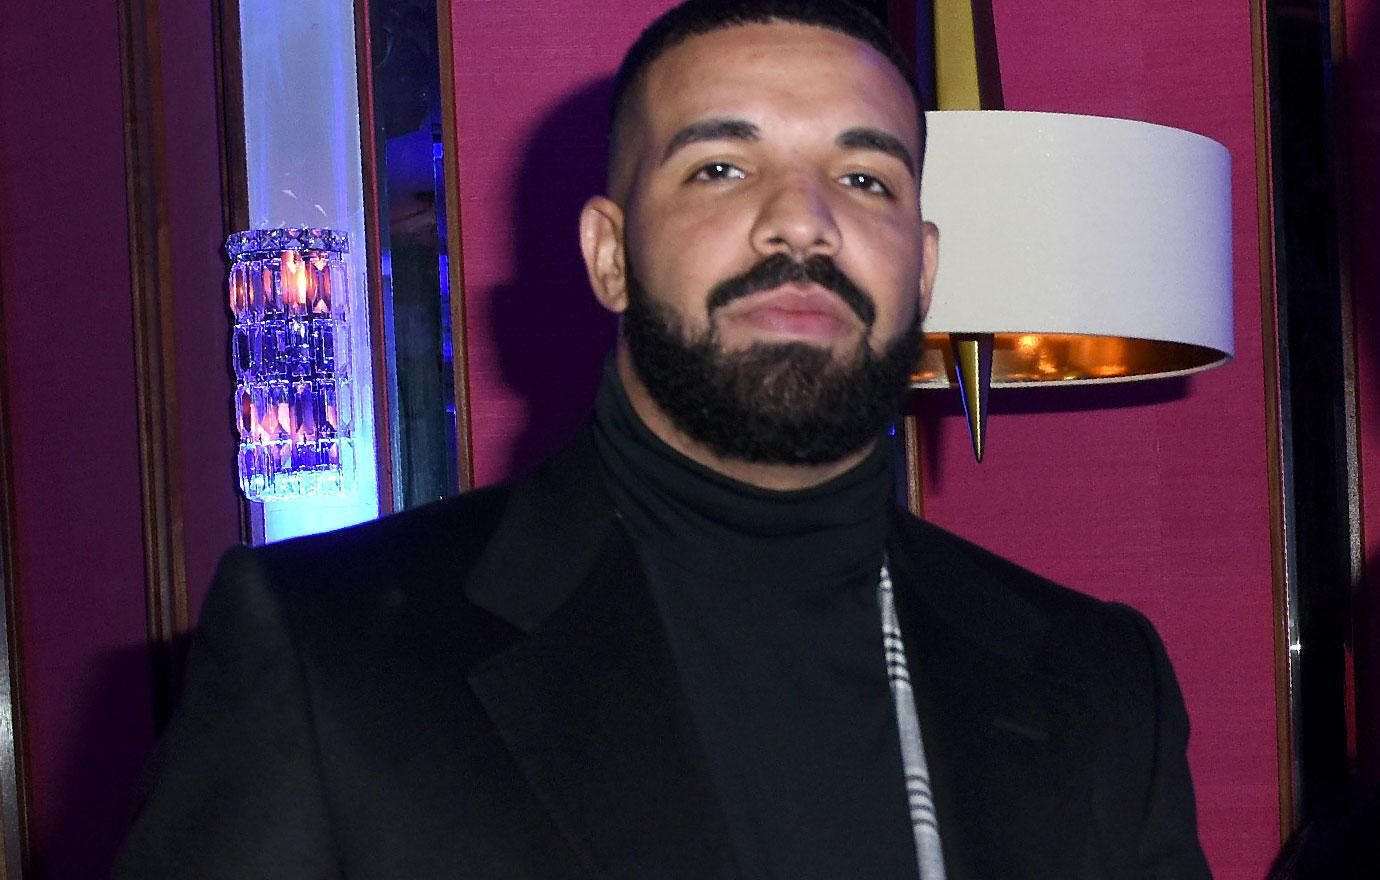 Drake In Disturbing Teen Video Scandal